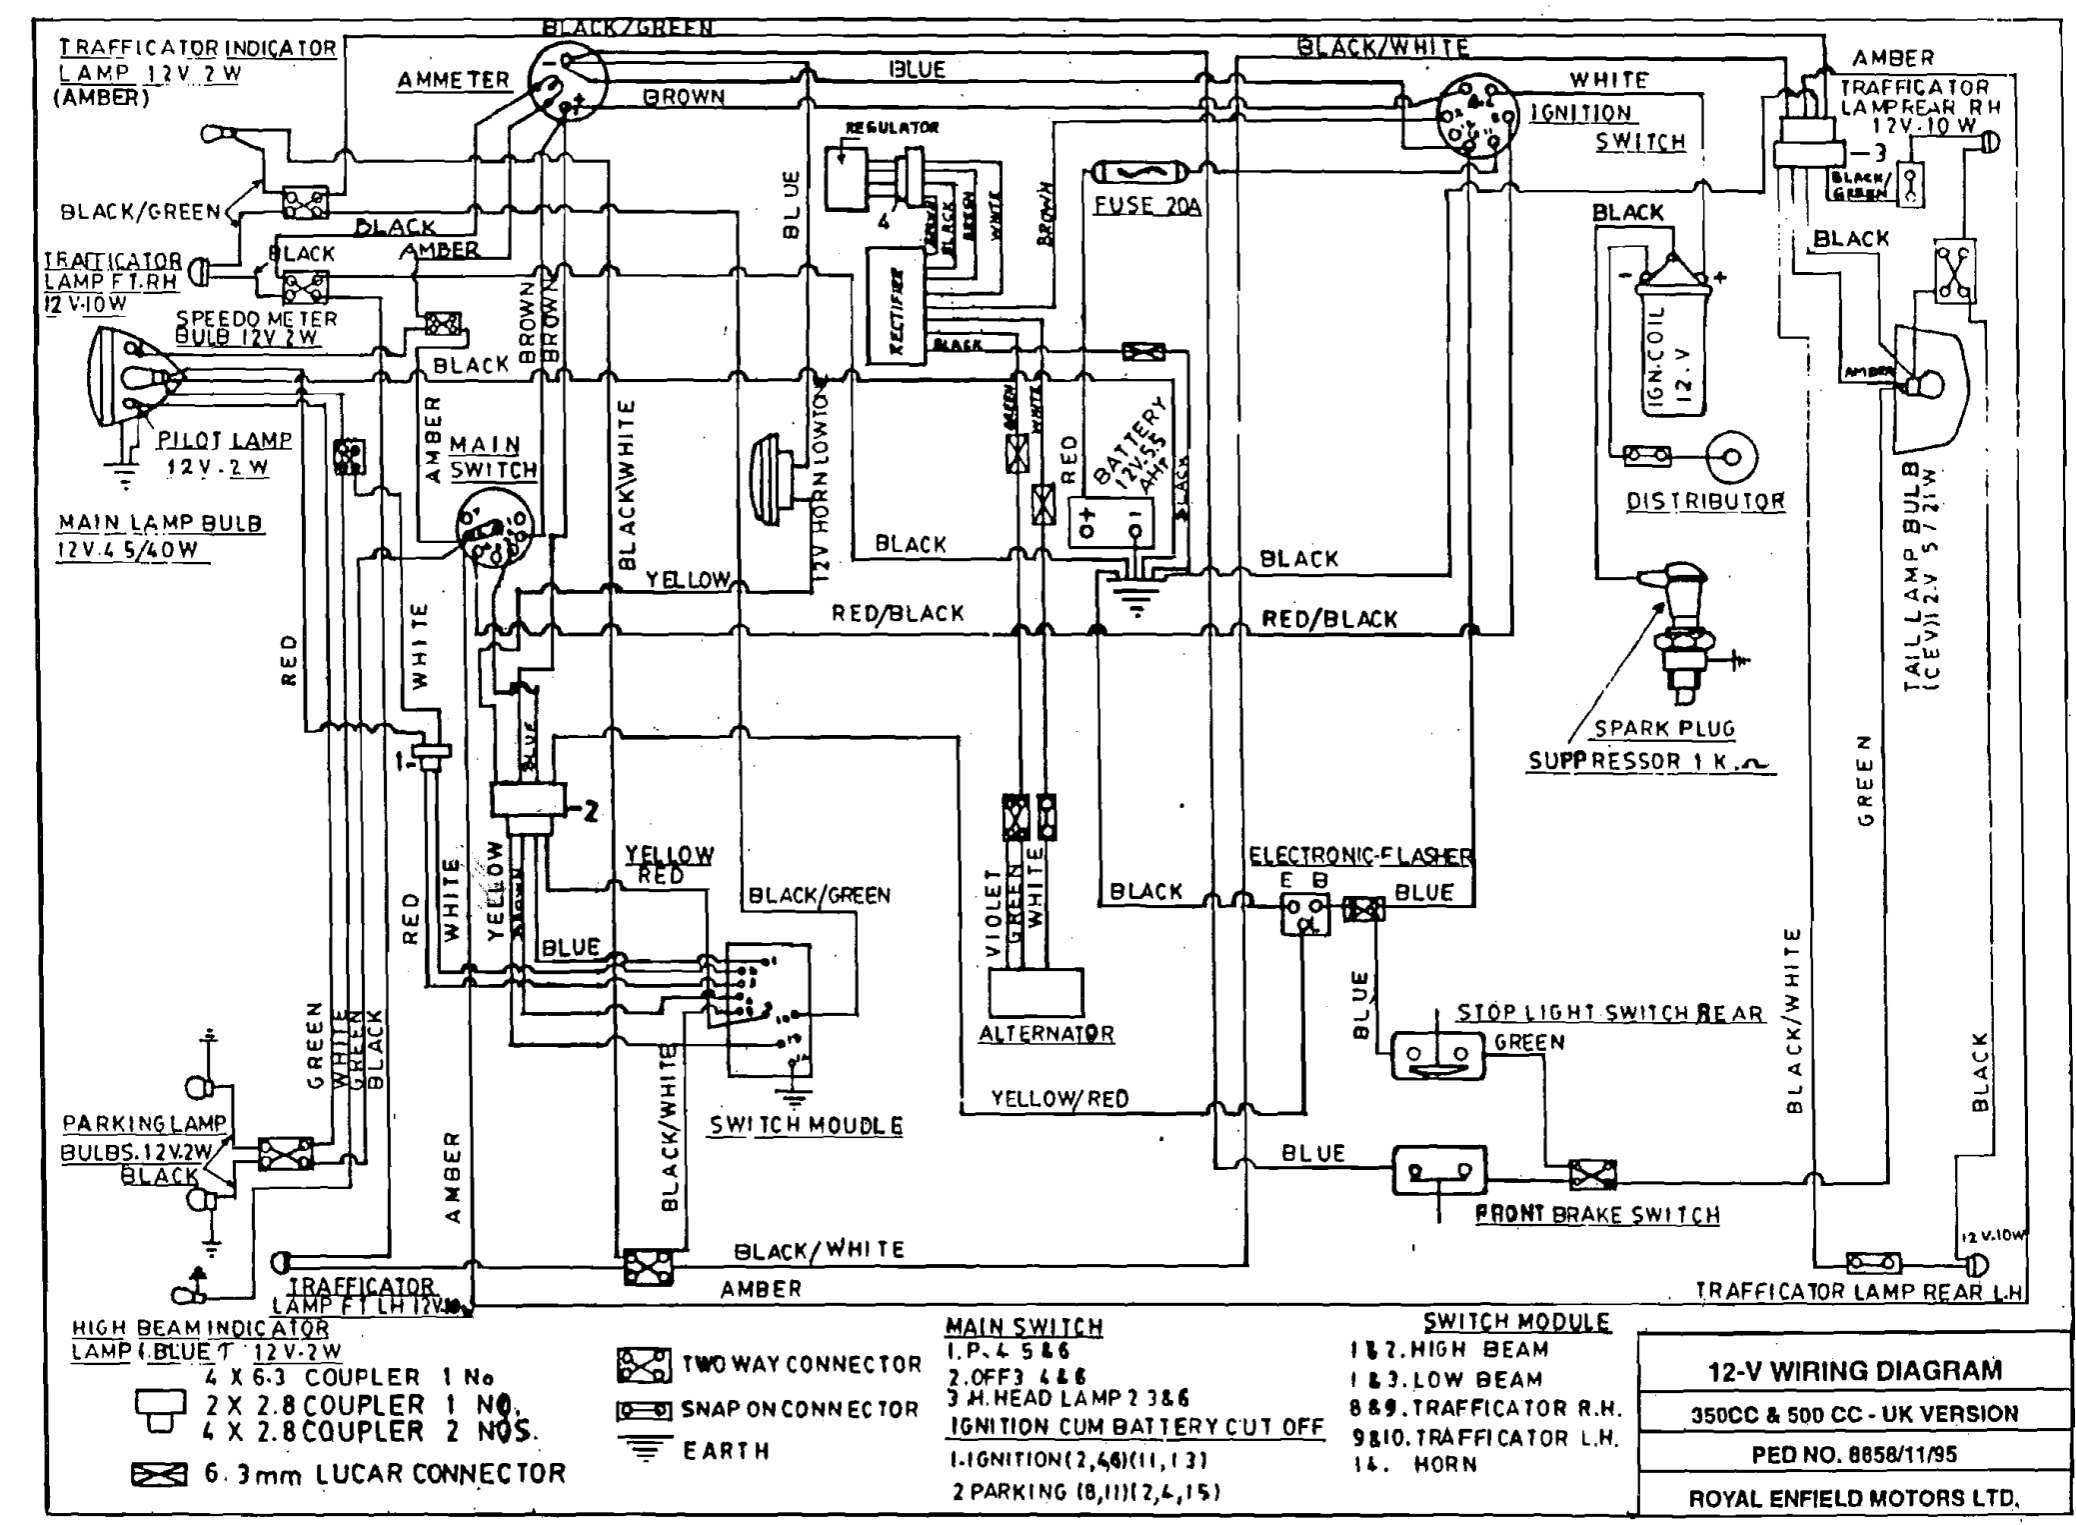 Wiring Diagram 850 Norton Commando